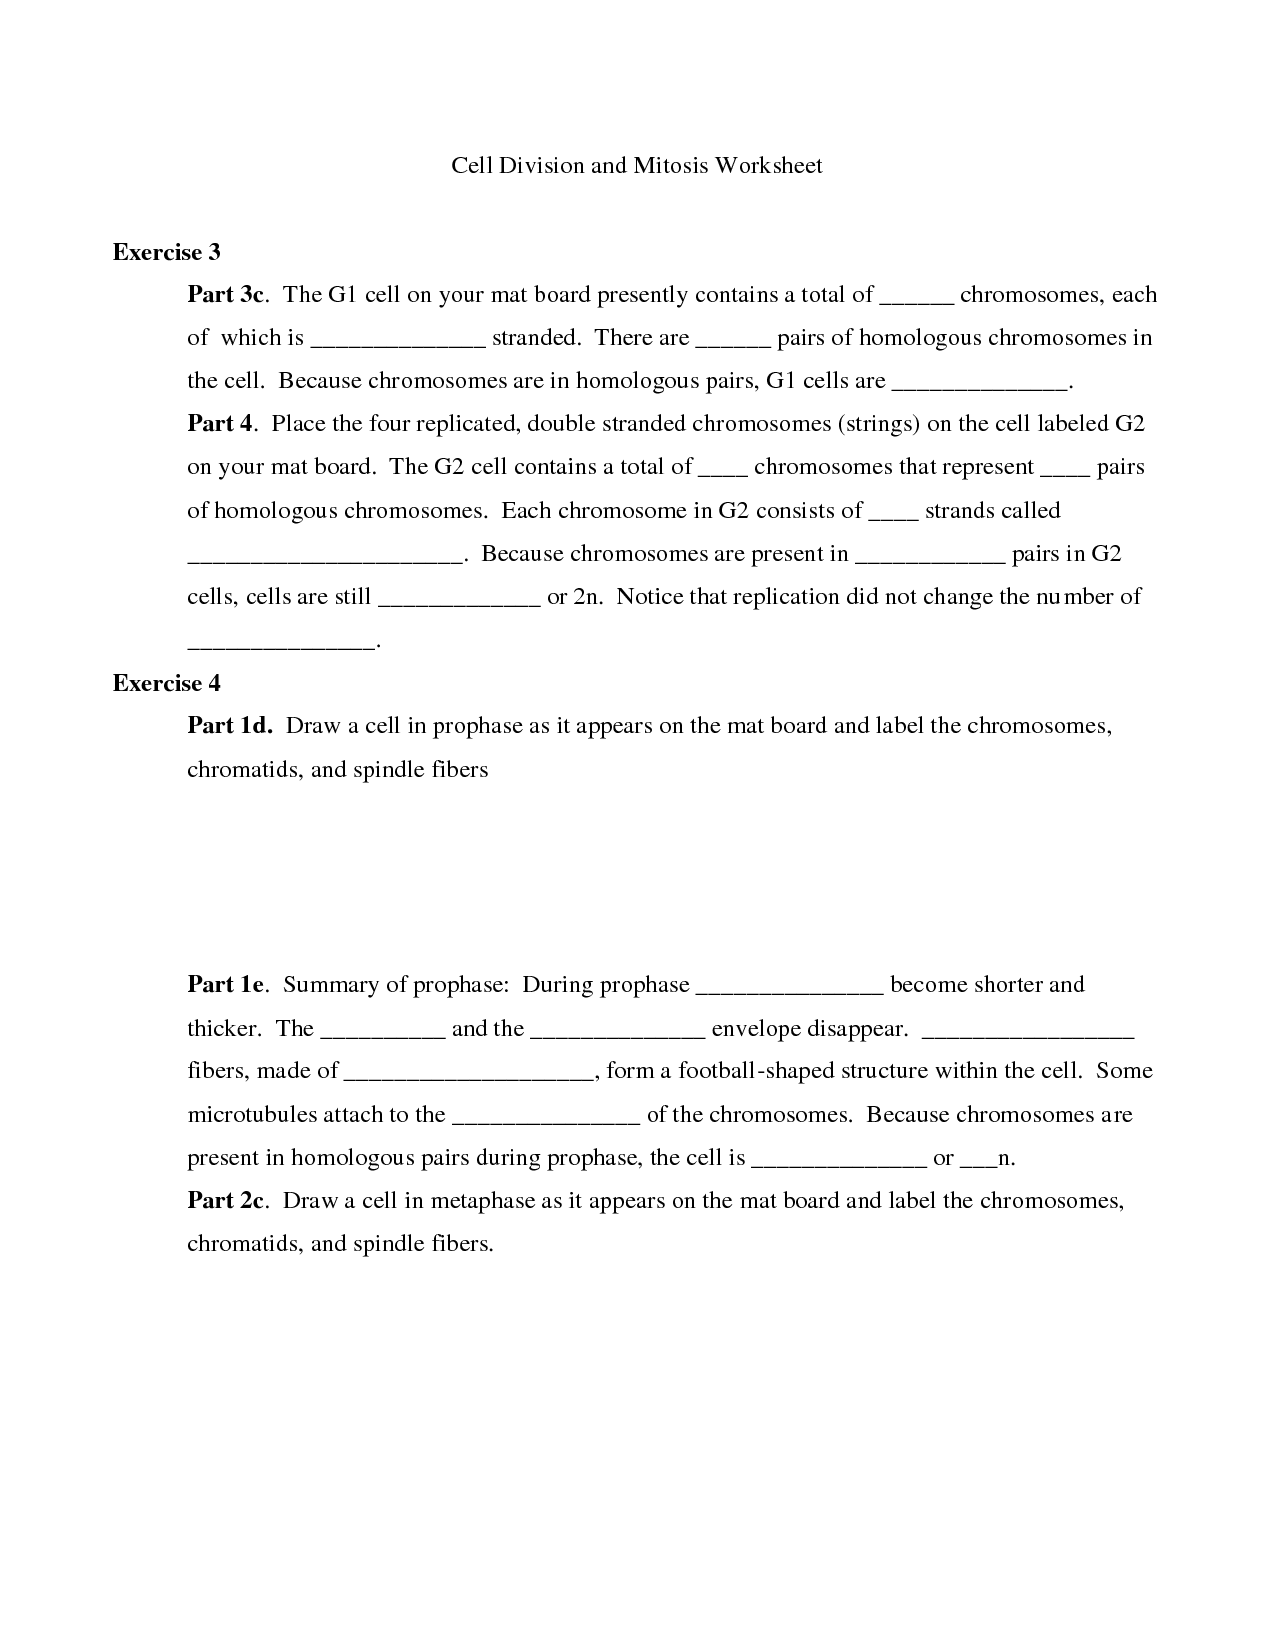 Pictures Cell Division Worksheets - Toribeedesign